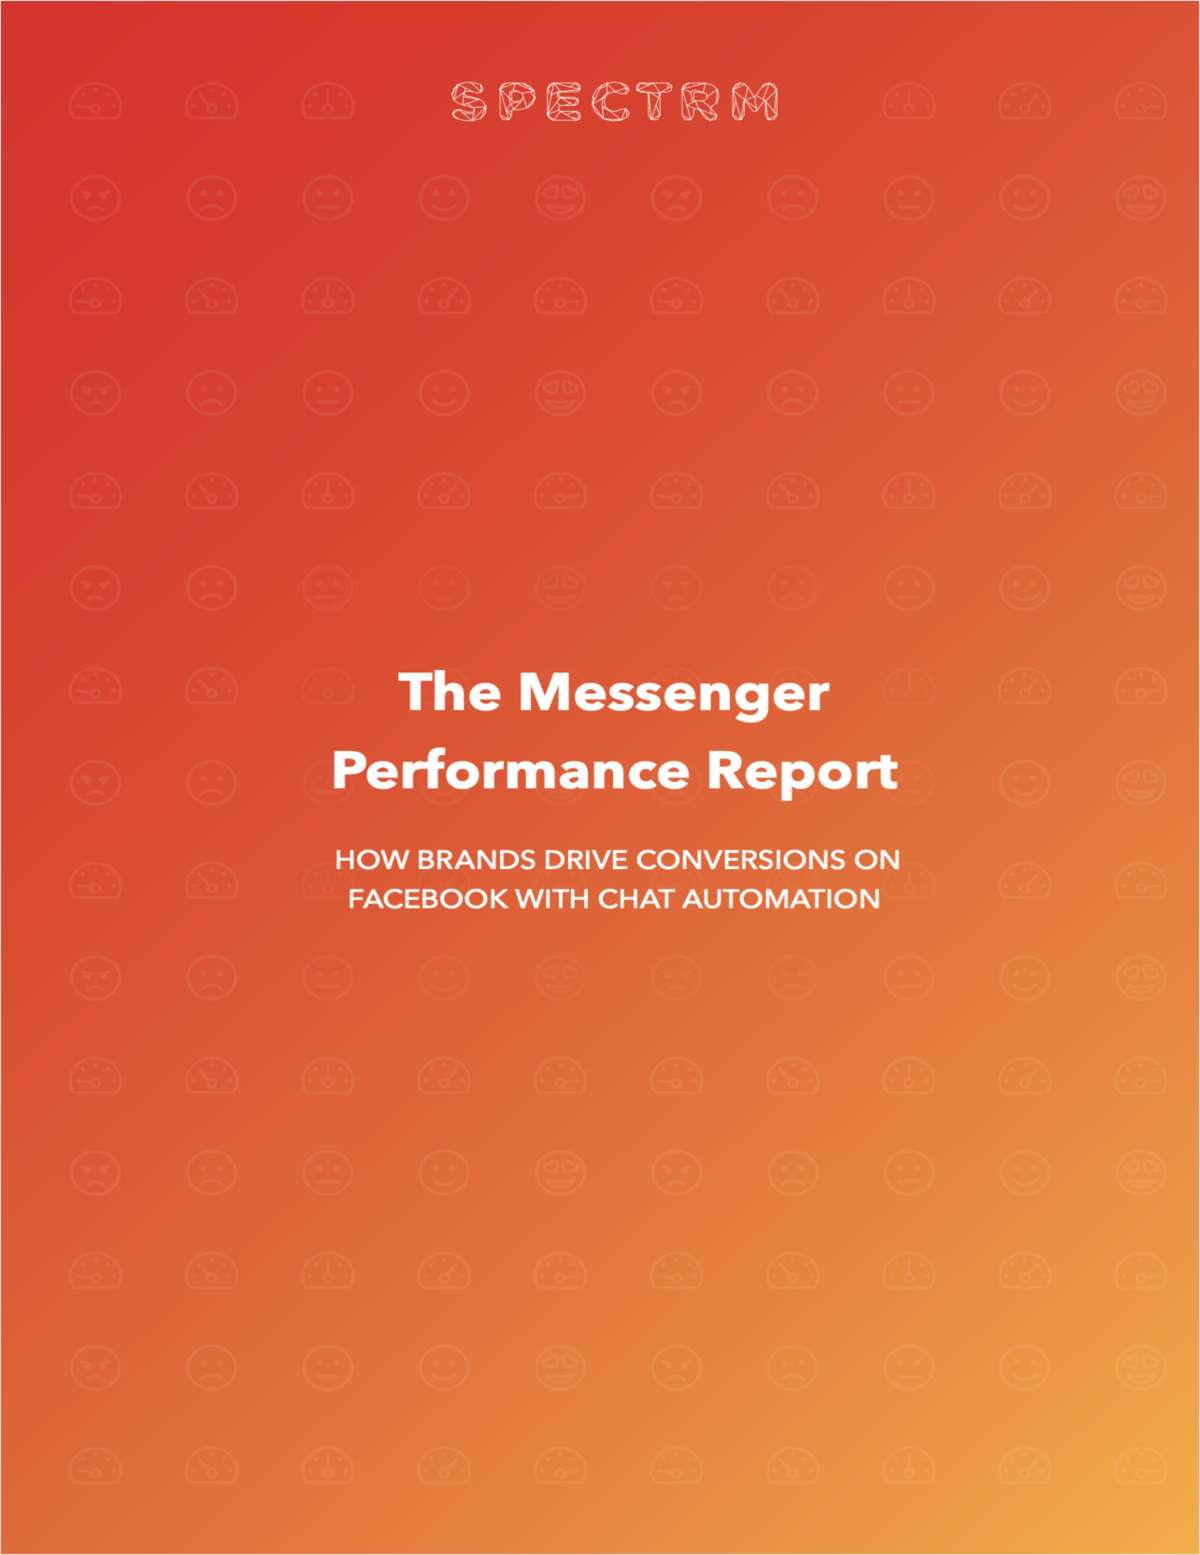 The Messenger Performance Report: How Brands Drive Conversions on Facebook With Chat Automation